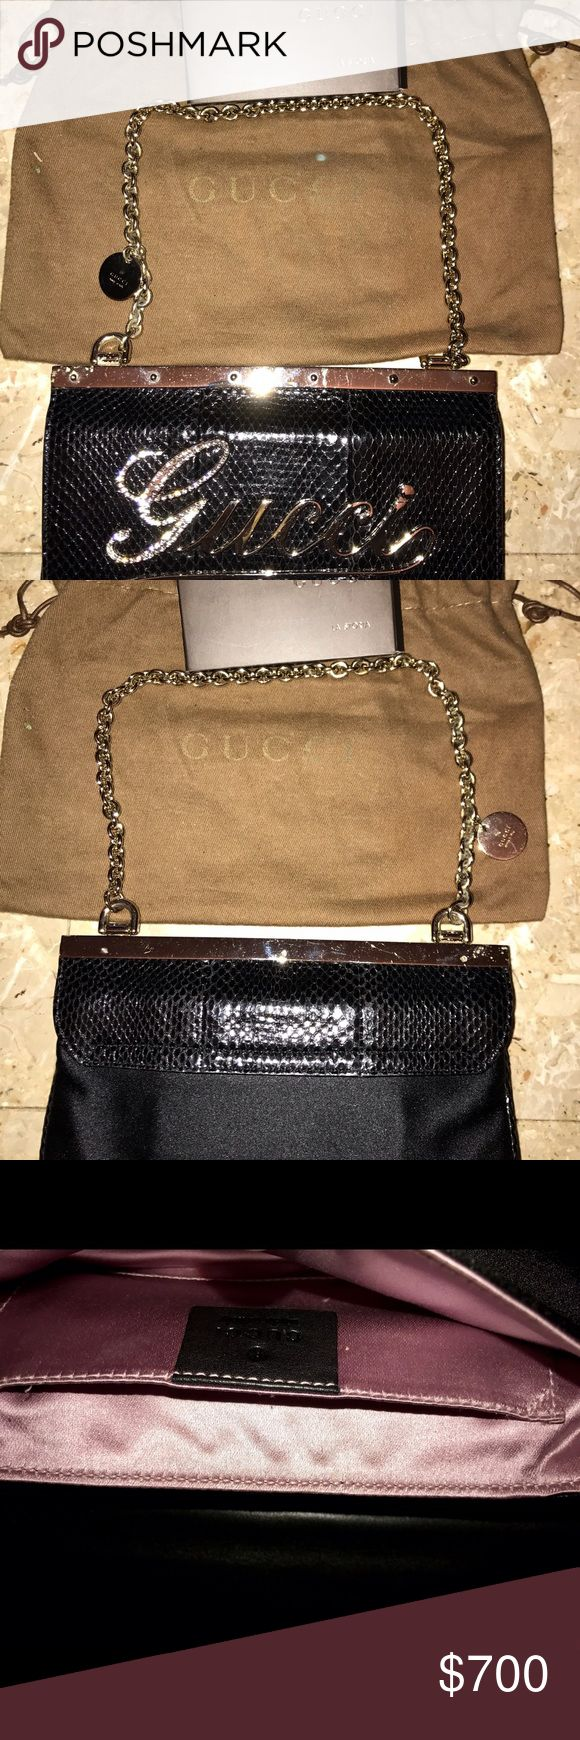 Gucci purse (black) Authentic Gucci purse. Python skin snd Swarovski crystals. Very good condition a few scratches on the gold hardware. Python skin in perfect condition Gucci Bags Clutches & Wristlets